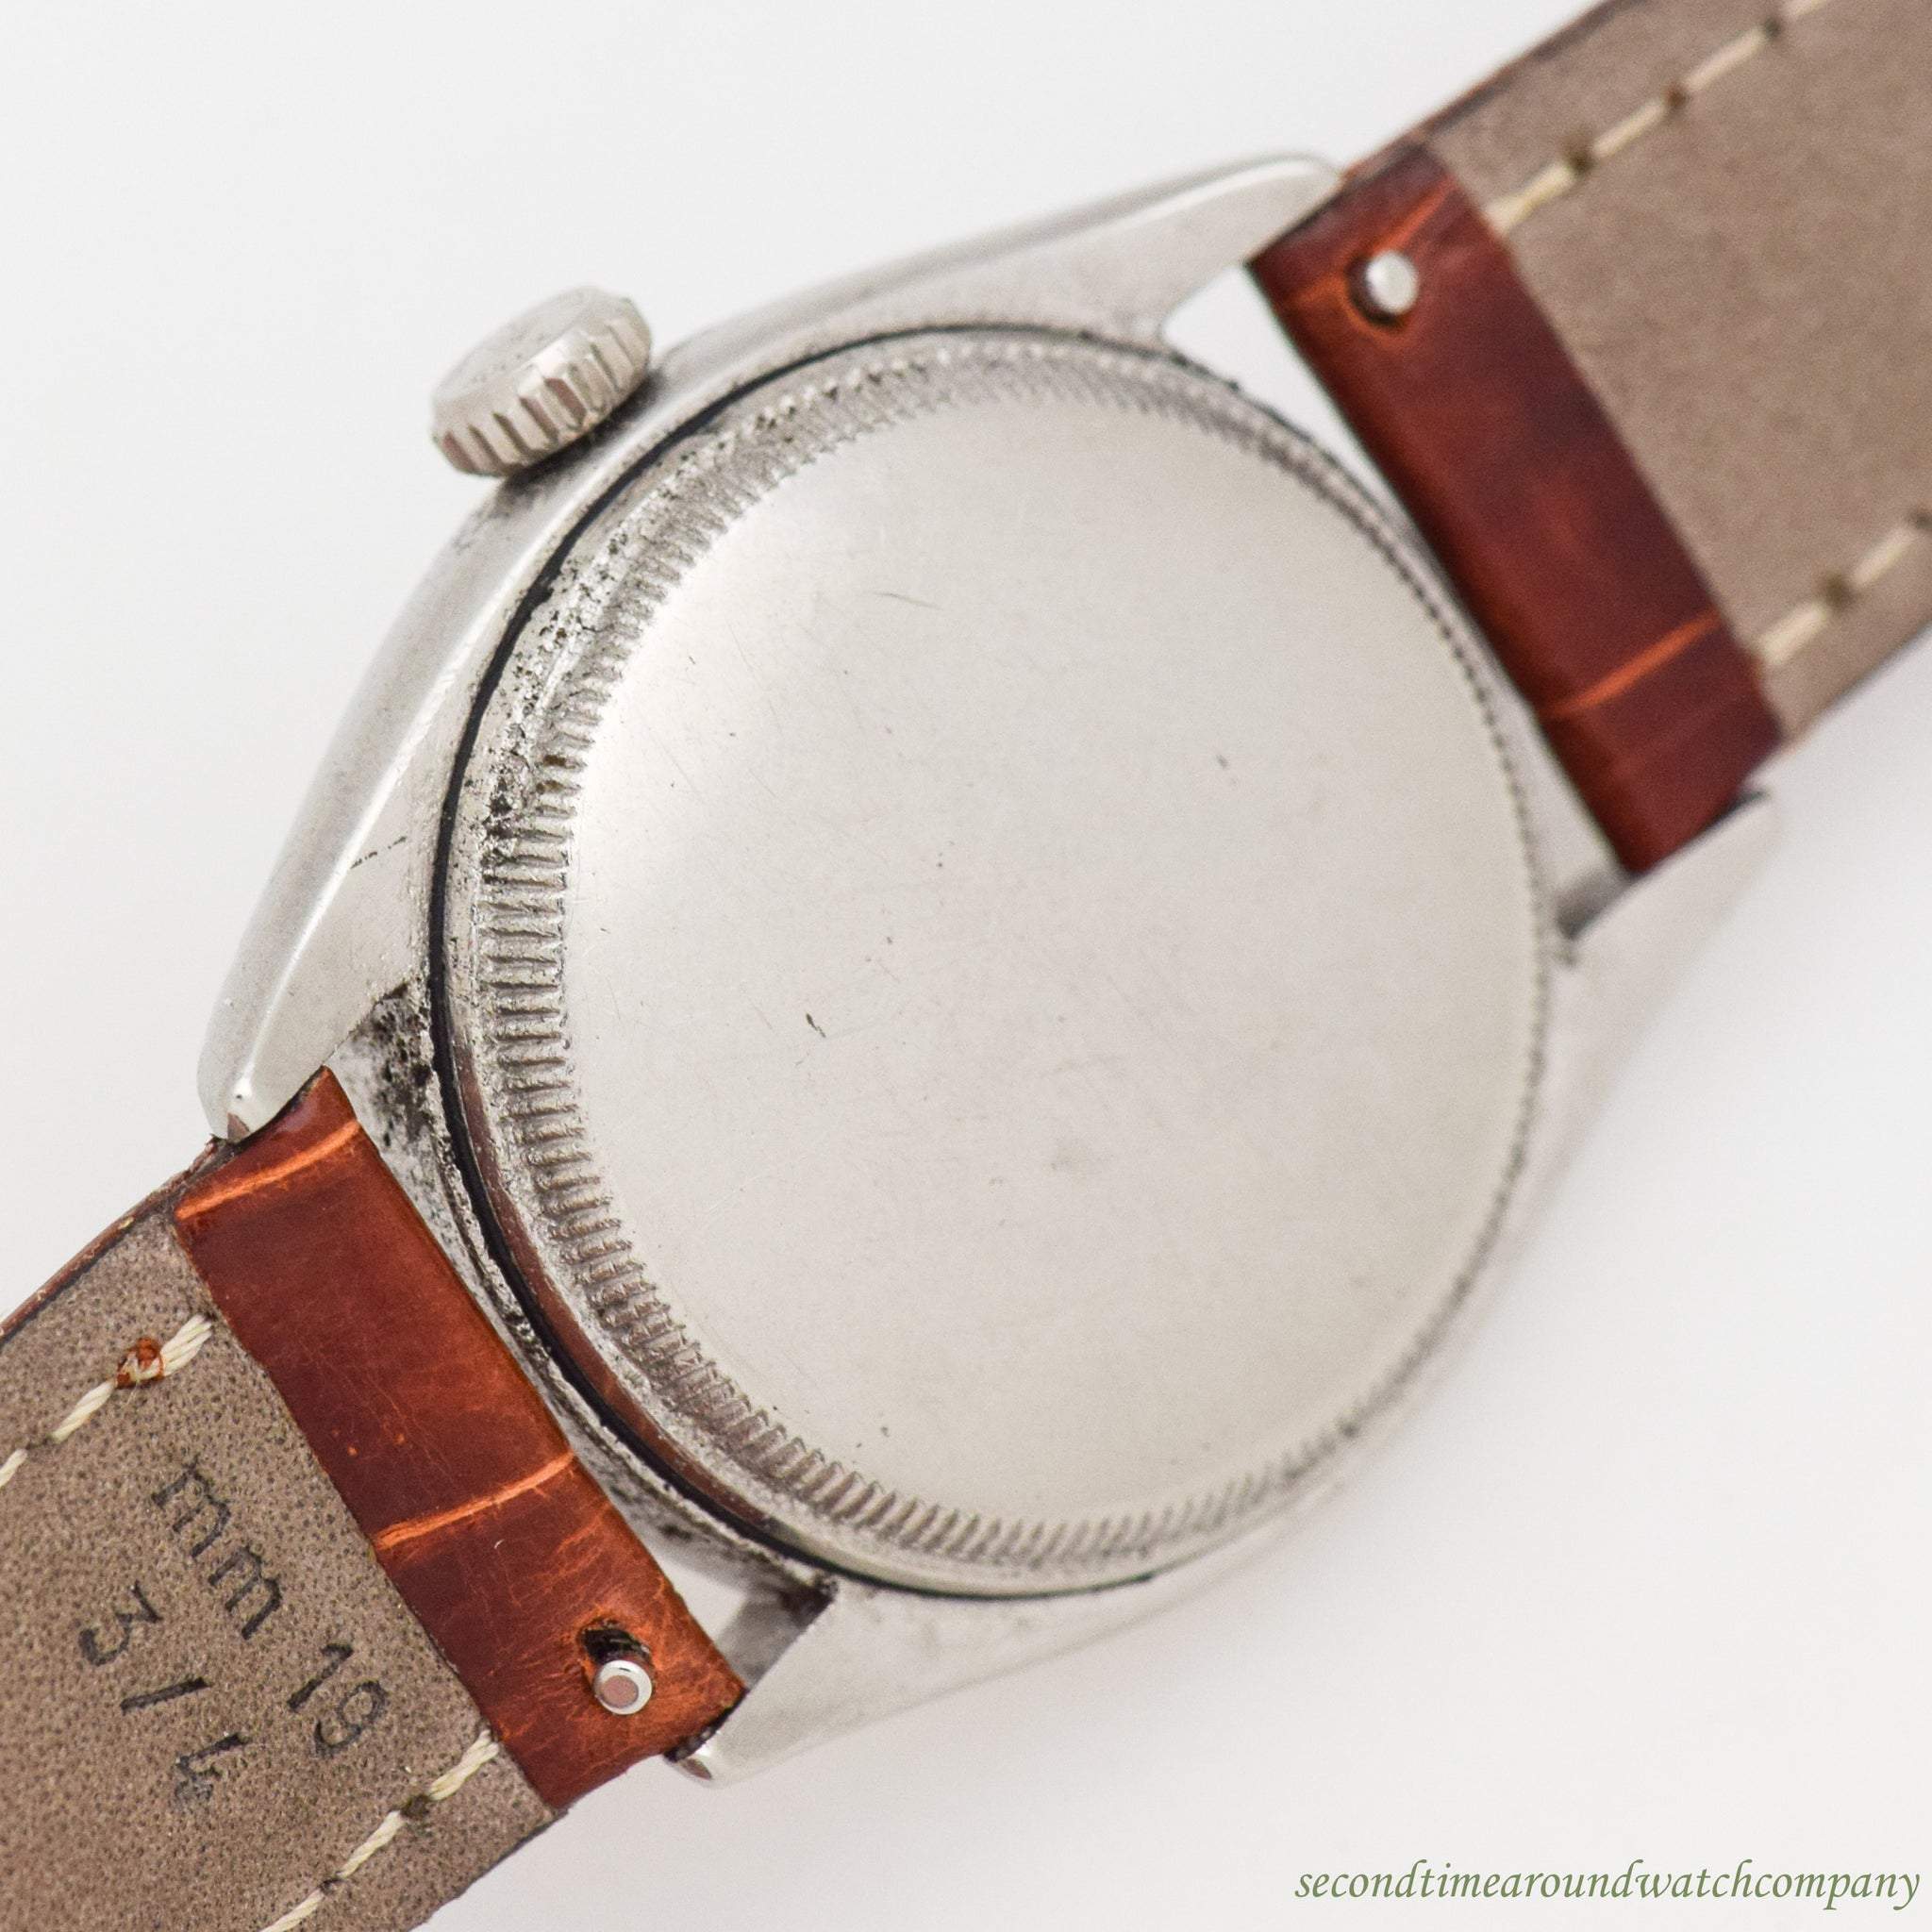 1952 Vintage Rolex Oyster Perpetual Ref. 6084 Stainless Steel Watch